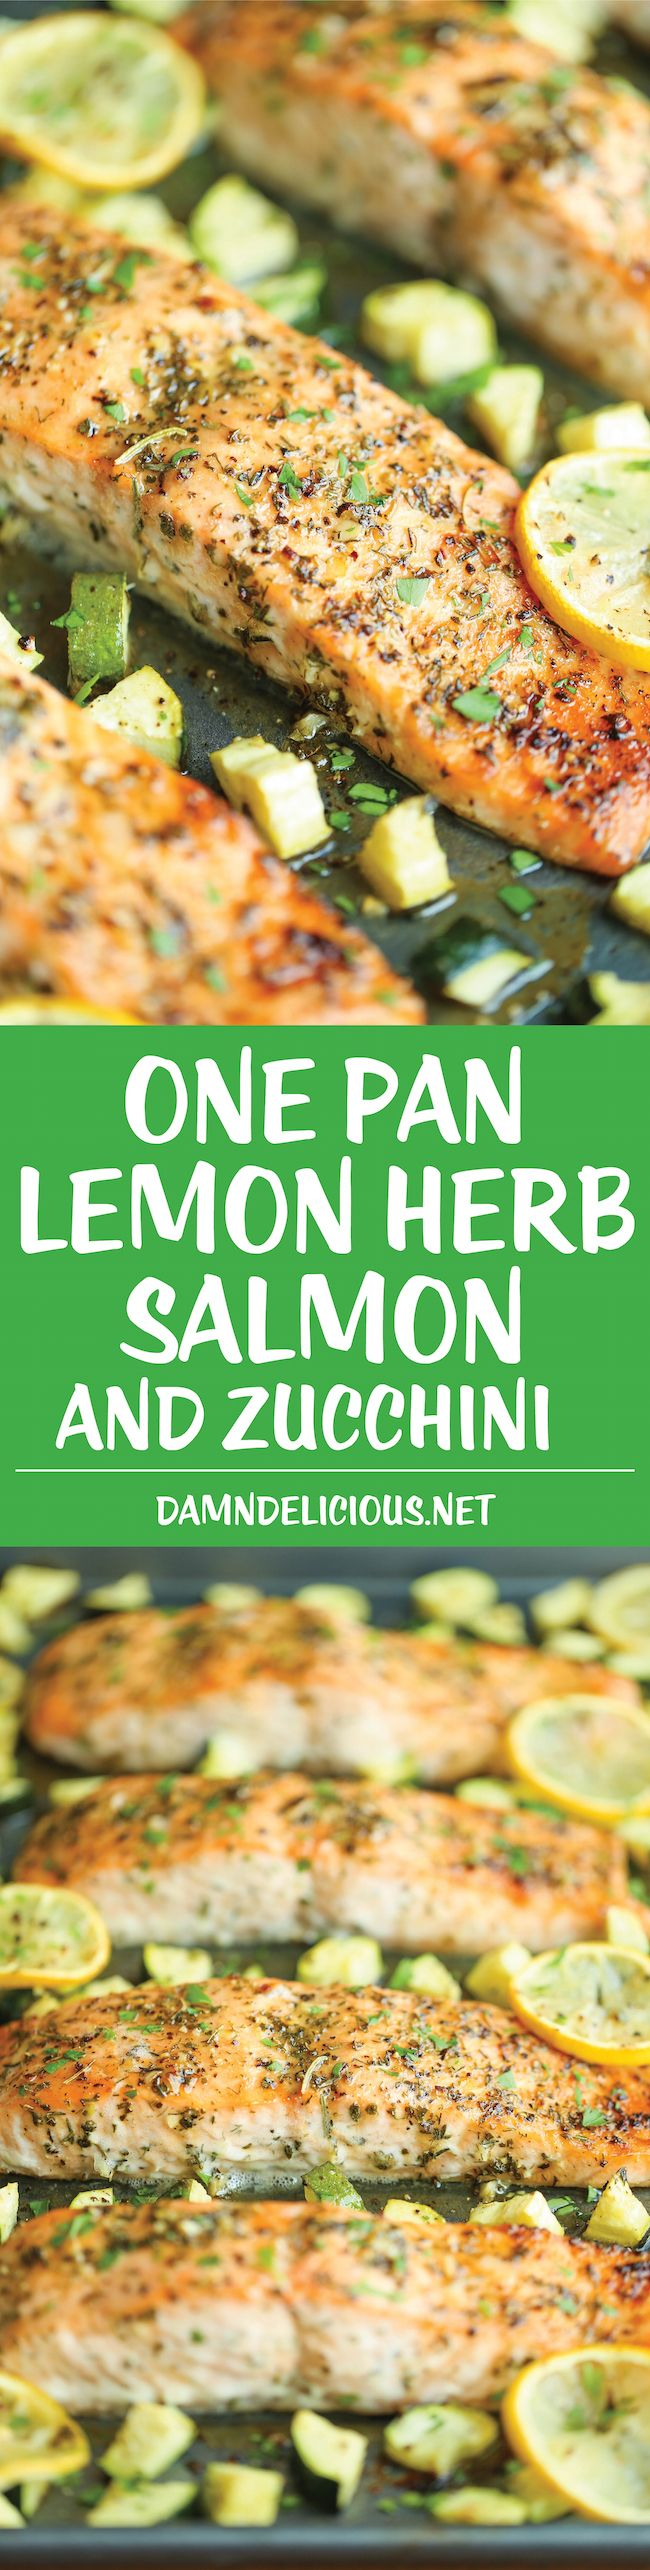 One Pan Lemon Herb Salmon and Zucchini - Quick, easy, and all made on a single…